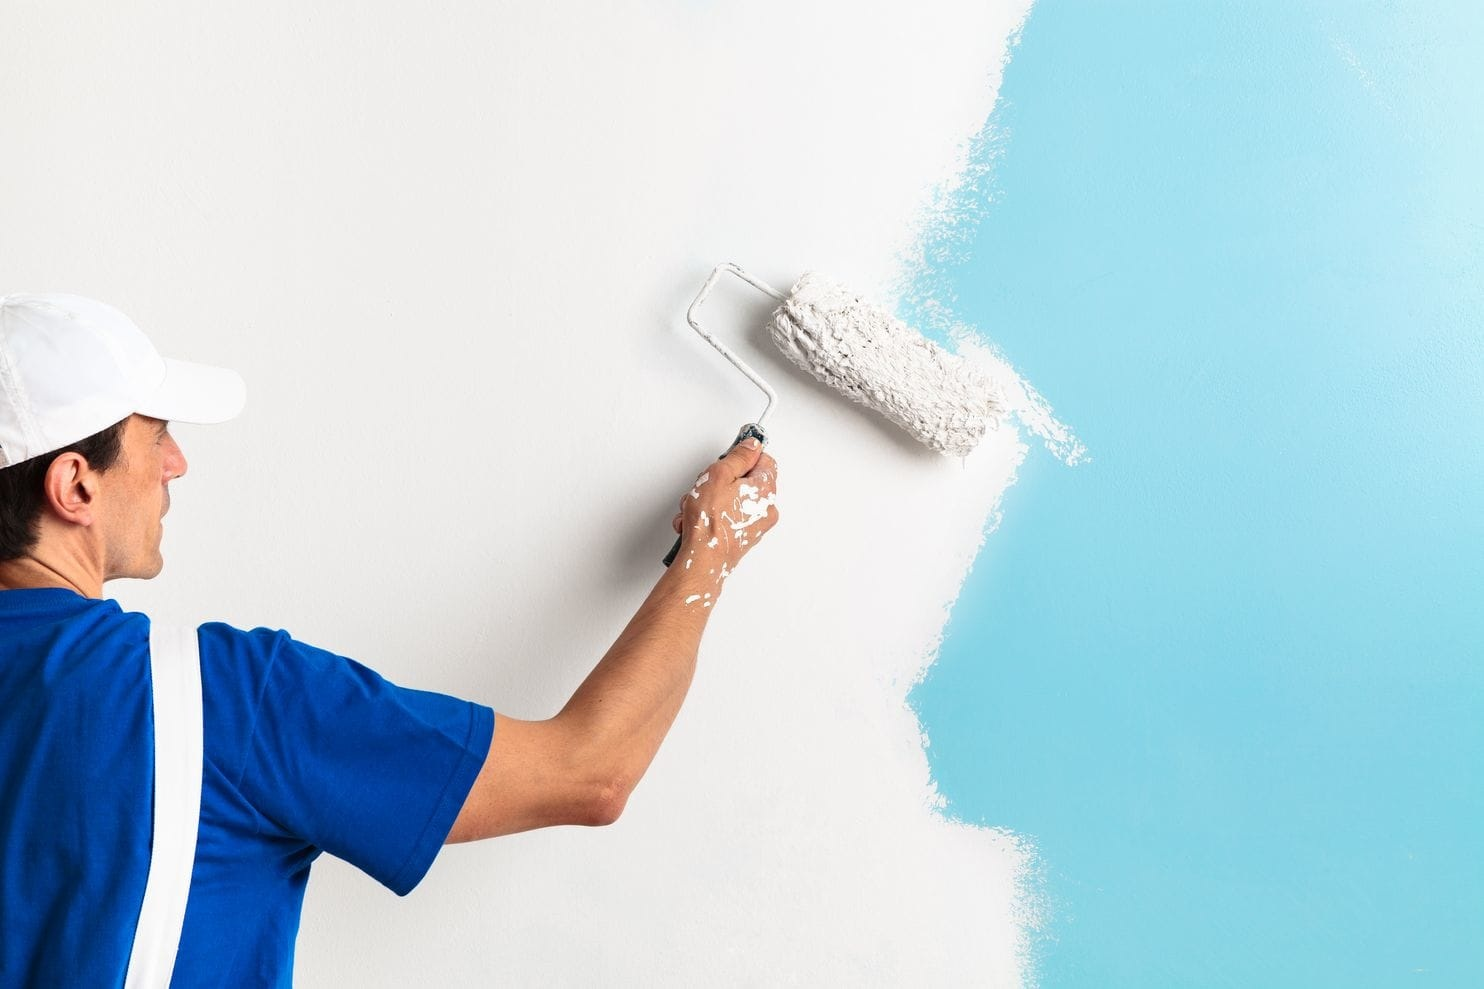 Why Hire a Residential Interior Painting Company Instead of Doing the Work Myself?